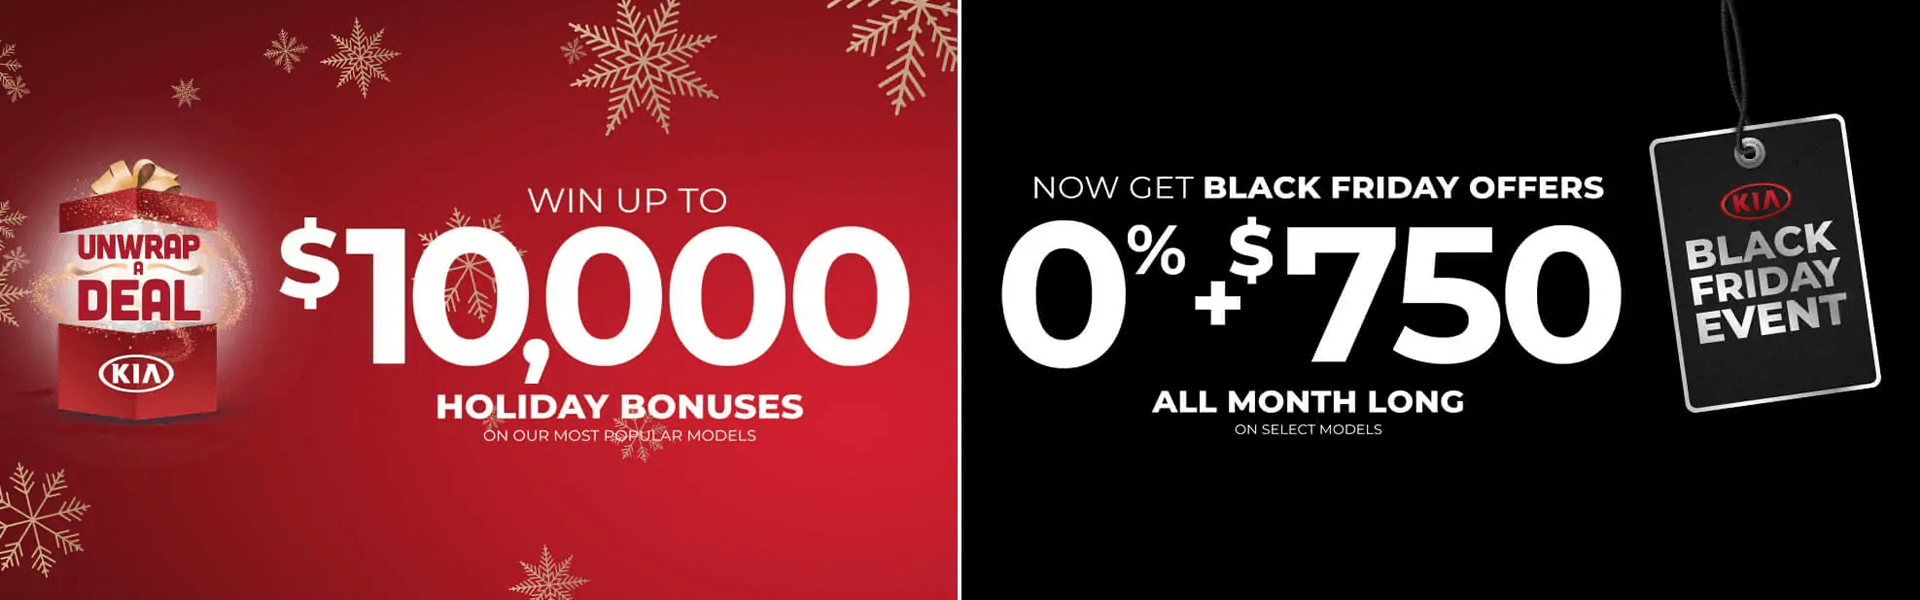 Kia Holiday special: win up to $10,000 on holiday bonuses, get black friday offers 0% + $750 all month long